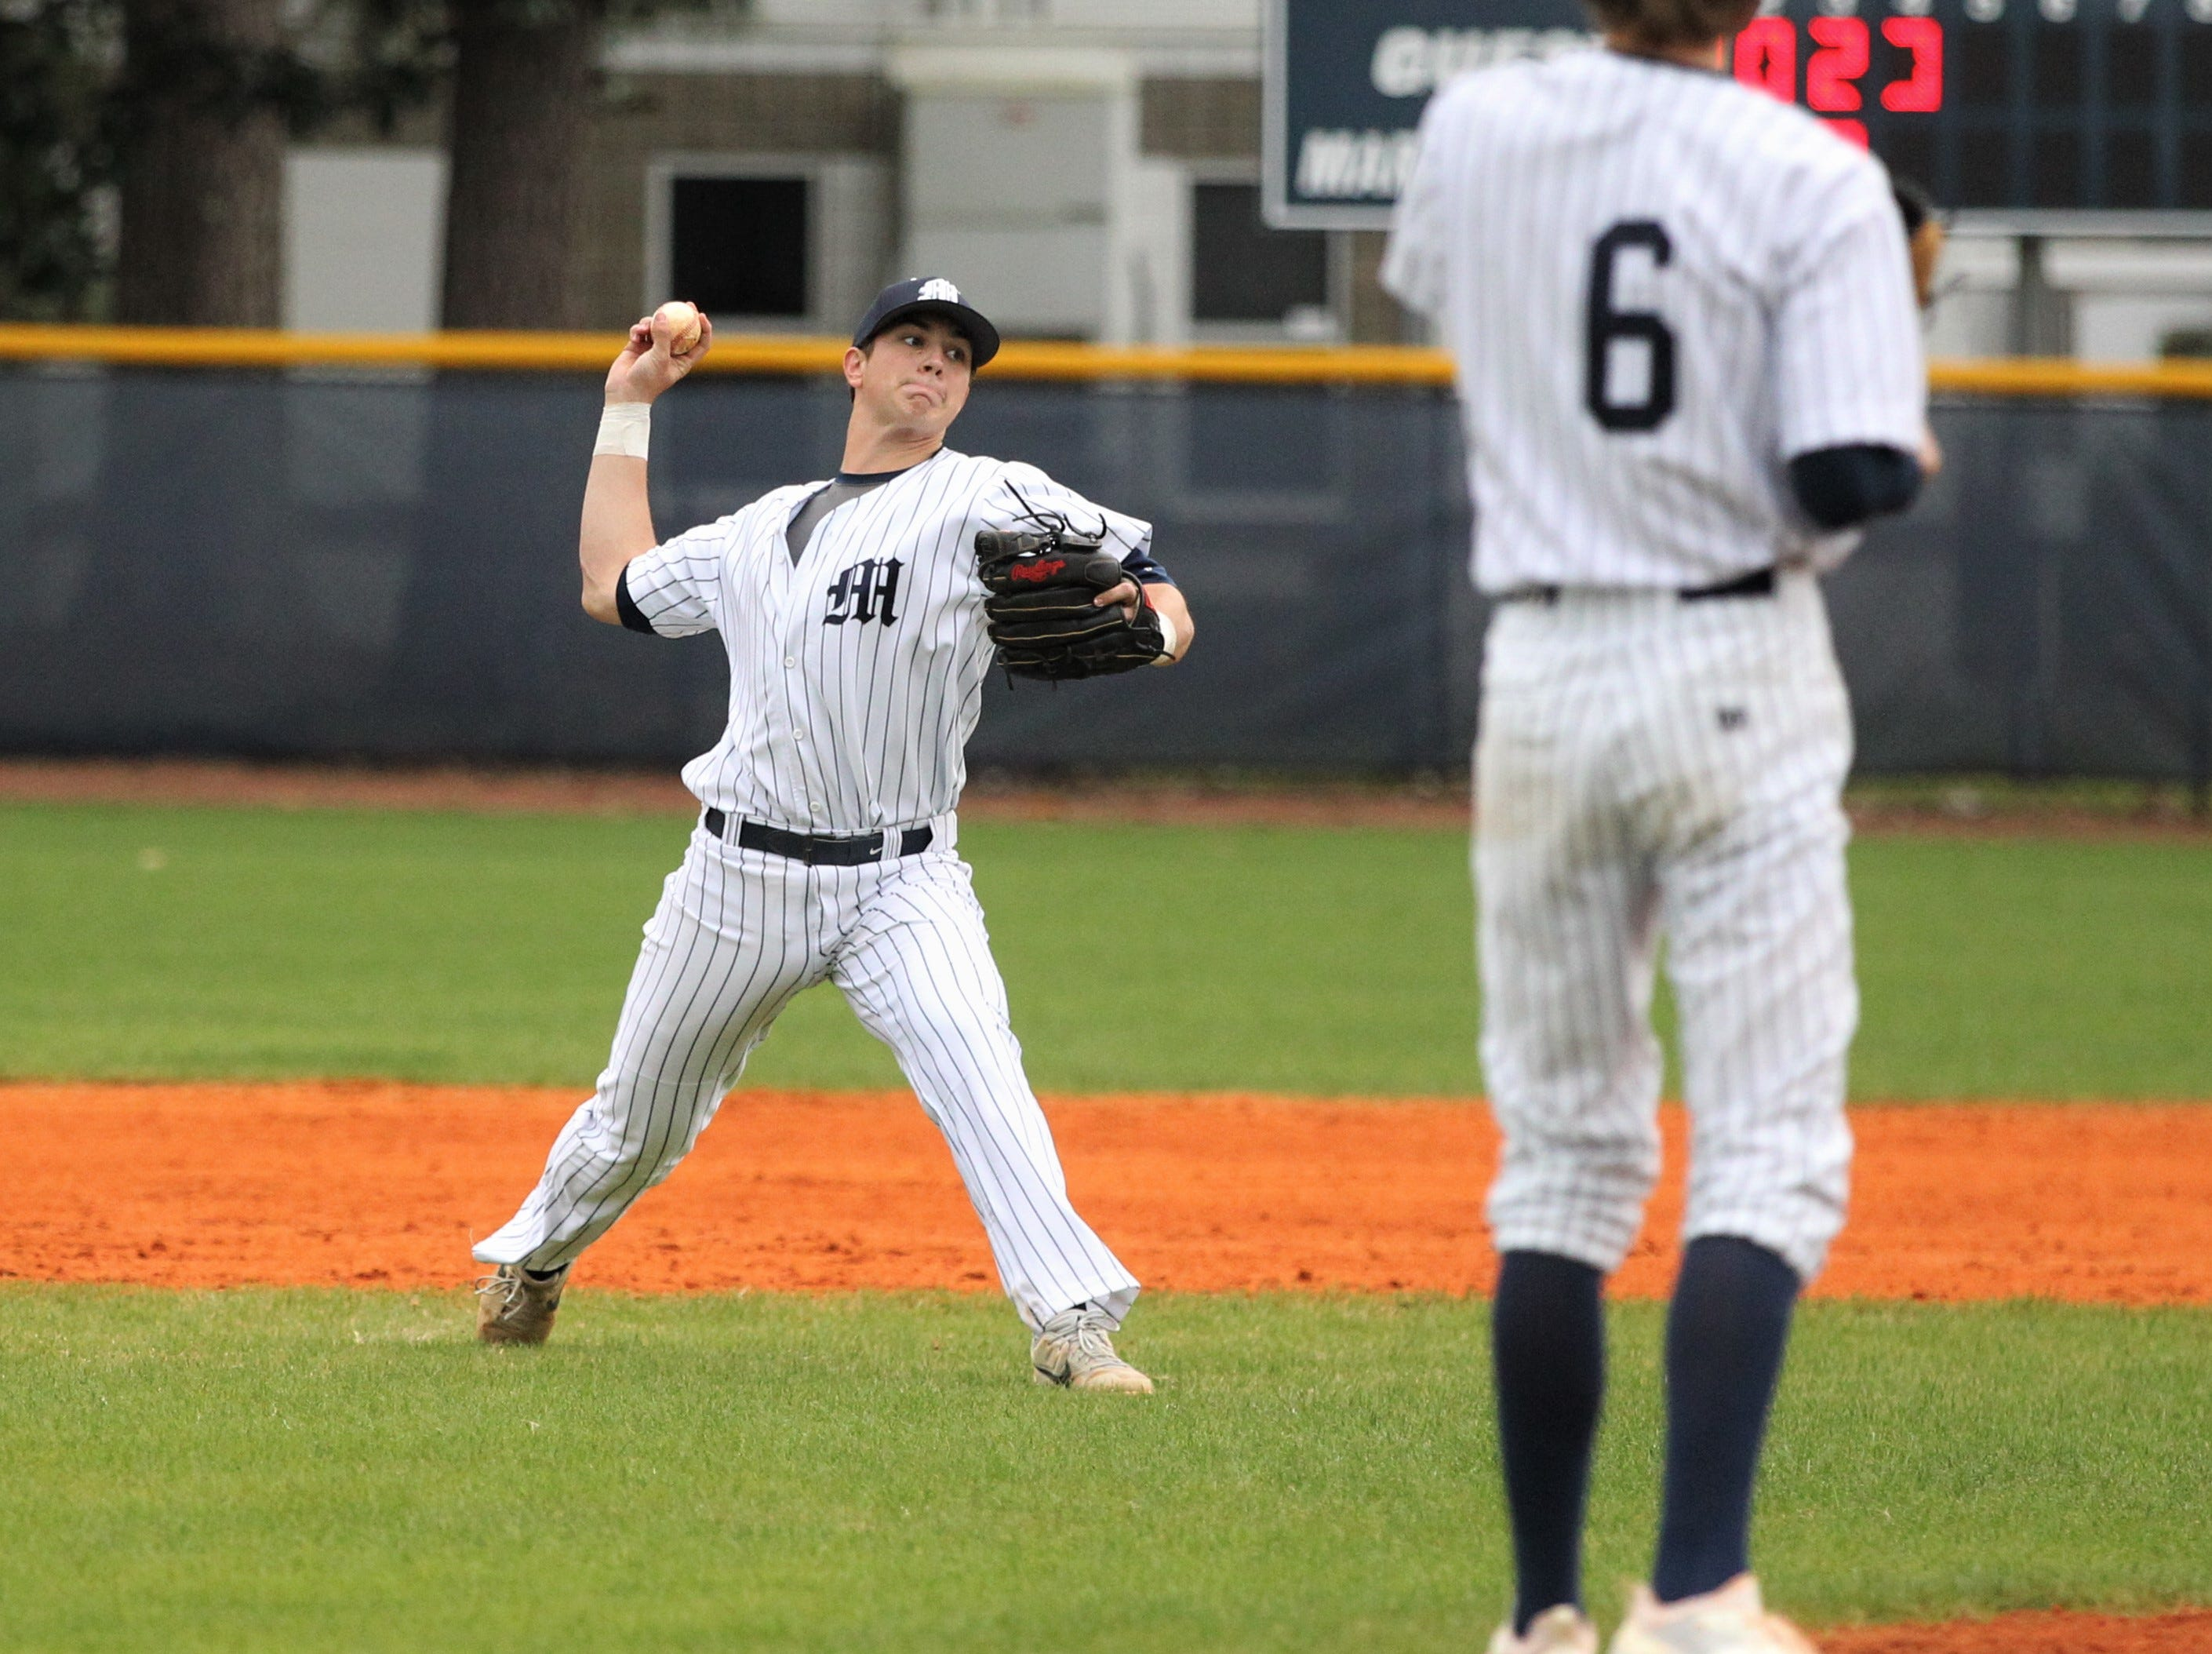 Maclay third baseman Jason Norris throws to first as Liberty County's baseball team went on the road to beat Maclay 8-2 on Saturday, March 16, 2019. The Bulldogs played their first game following their head coach Corey Crum's tragic death six days ago.